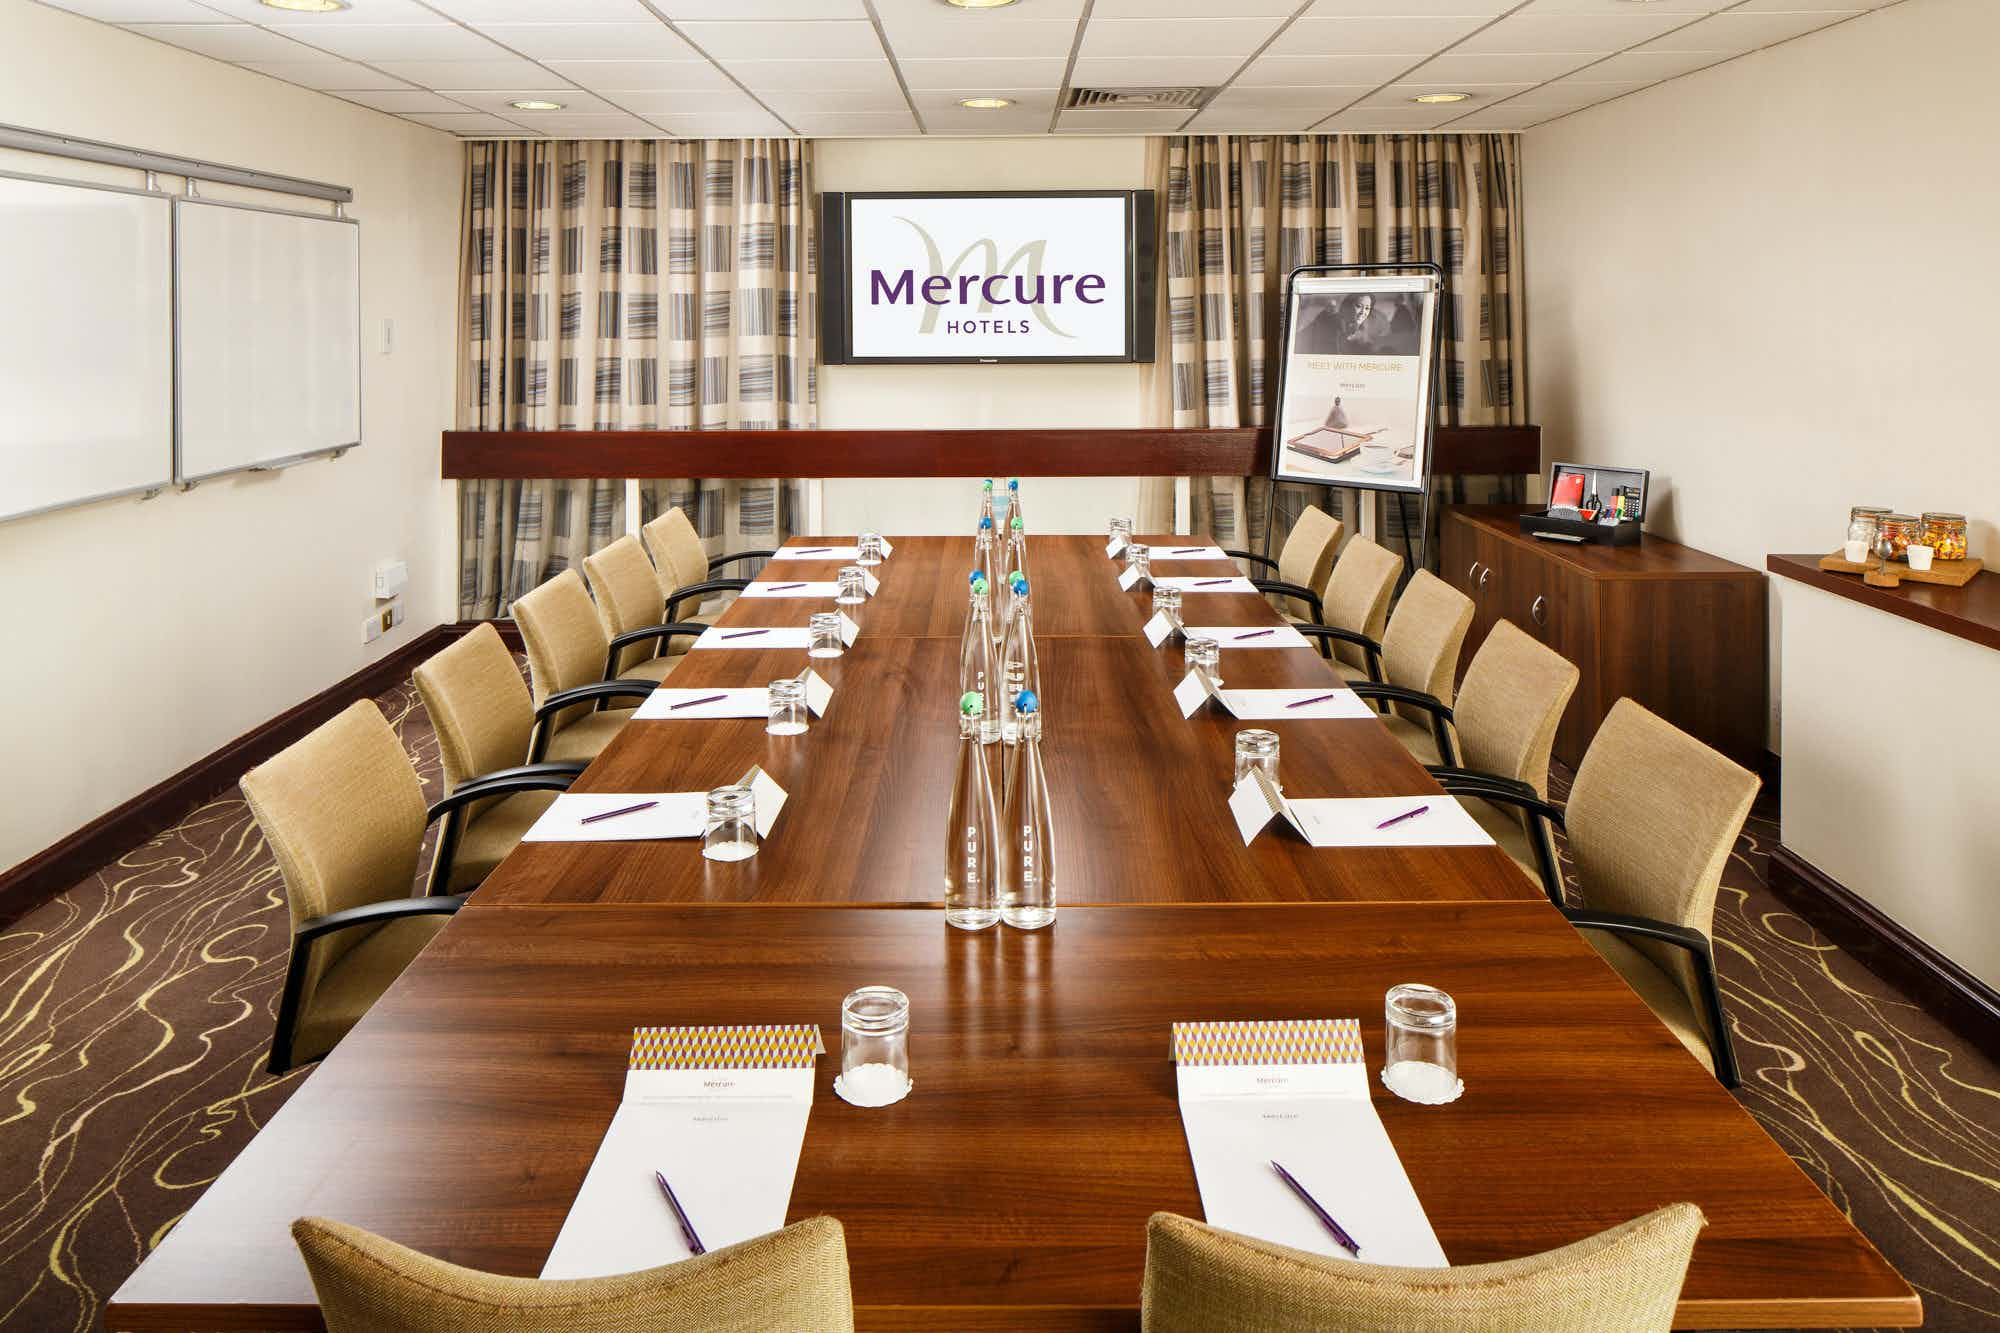 Congress Suite, Mercure Manchester Piccadilly Hotel